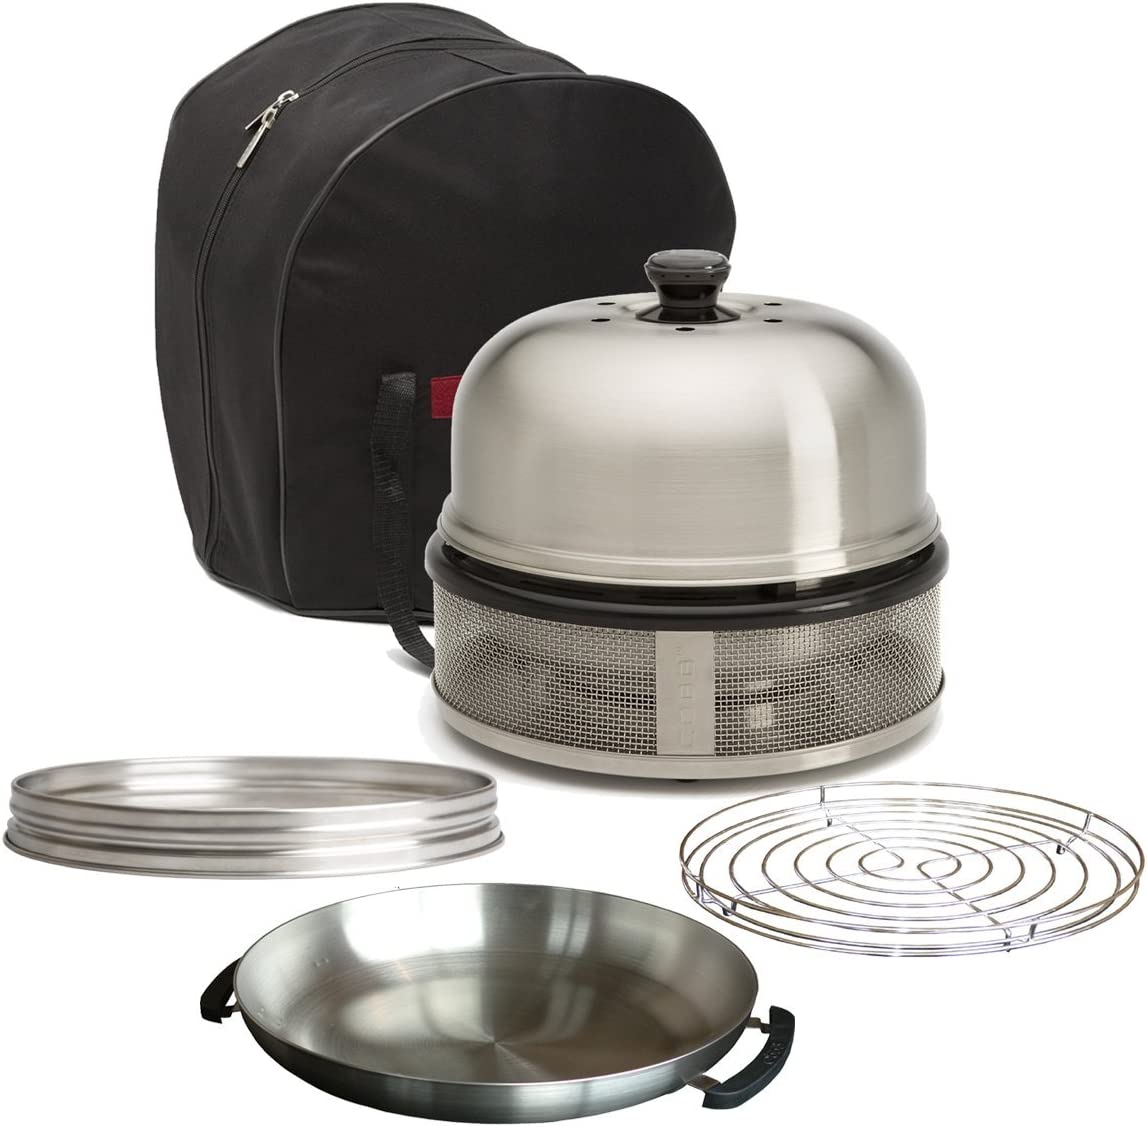 Cobb Premier Compact Combo 4 Compact Extension /& Fry Dish Includes Cobb Bag Rack